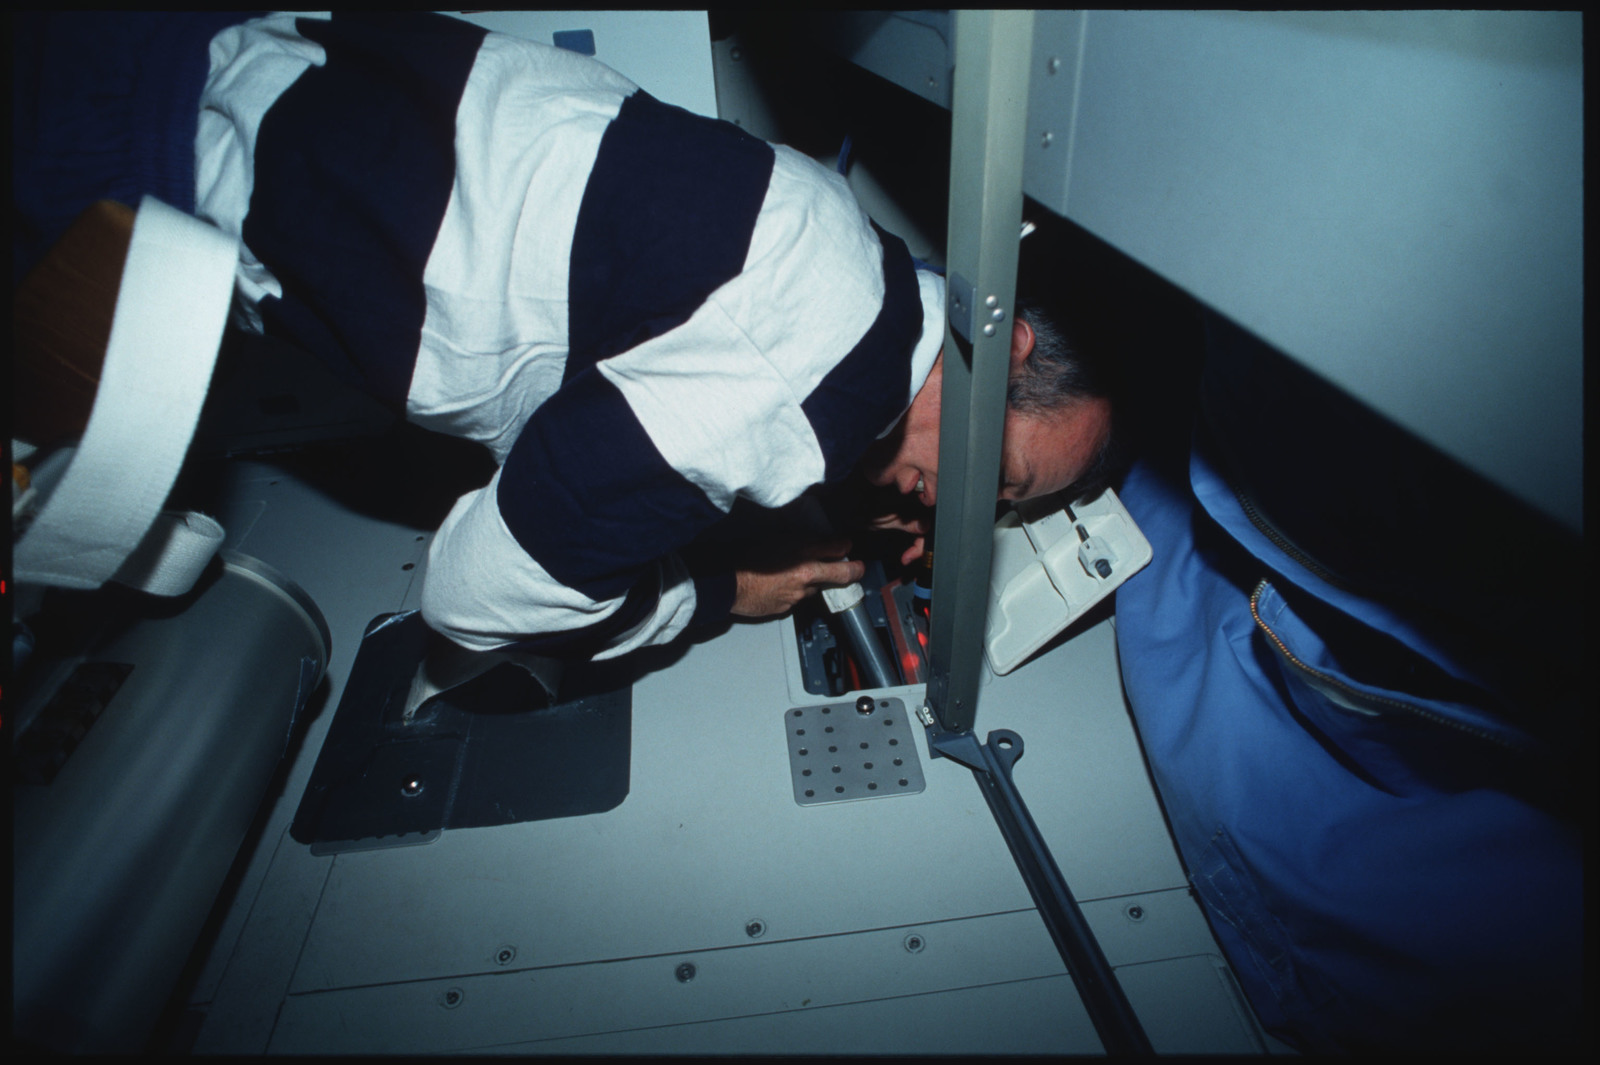 S45-14-017 - STS-045 - STS-45 crewmembers engaged in orbiter maintenance